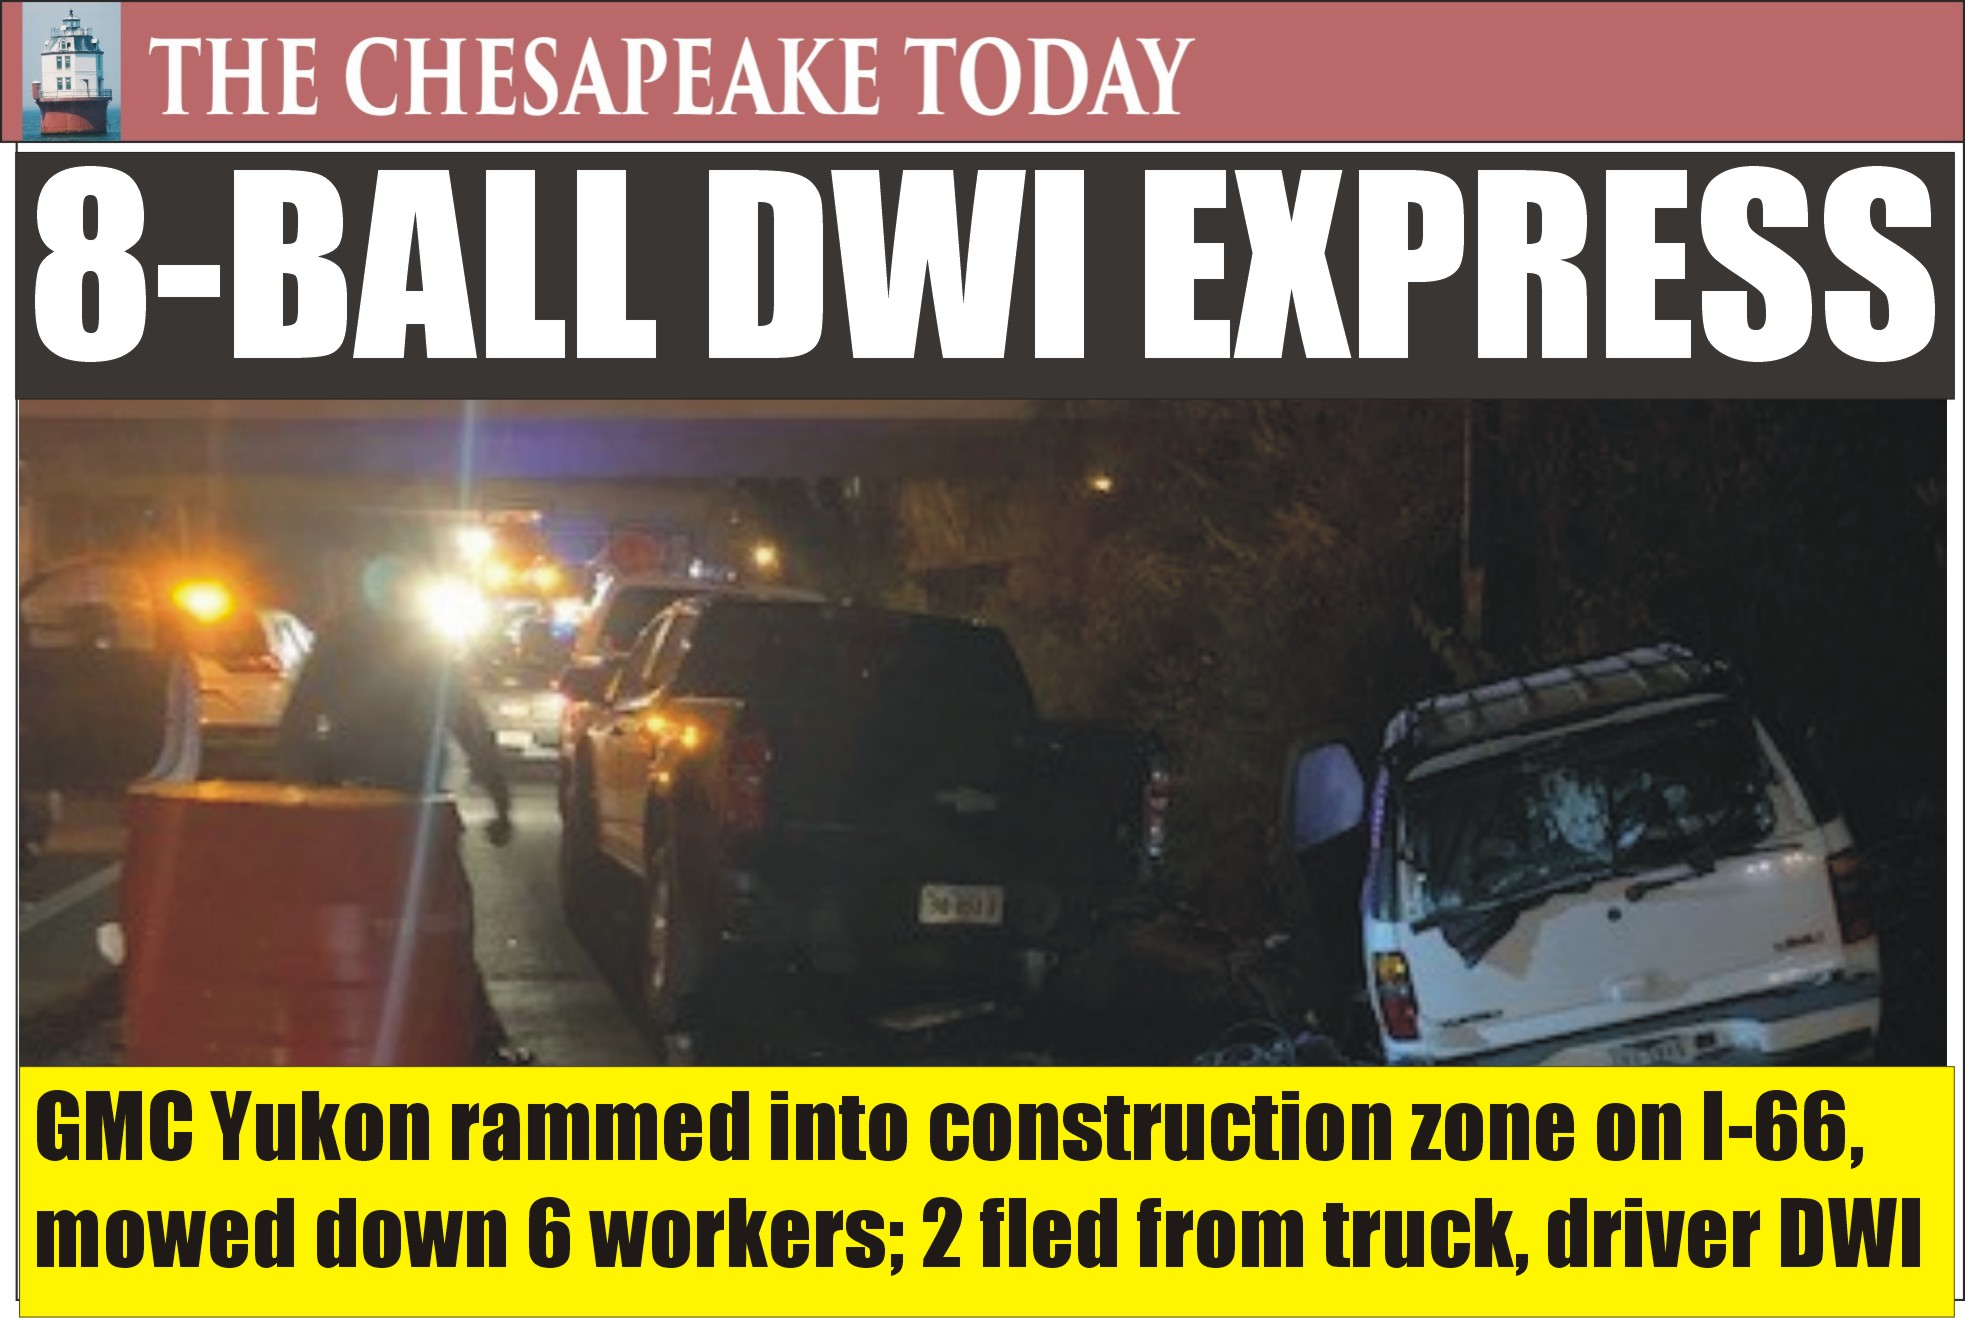 DWI HIT PARADE: As the Christmas Drinking, Driving and Dying Season kicks into full gear, a late-night party driver plowed into highway work zone in Virginia